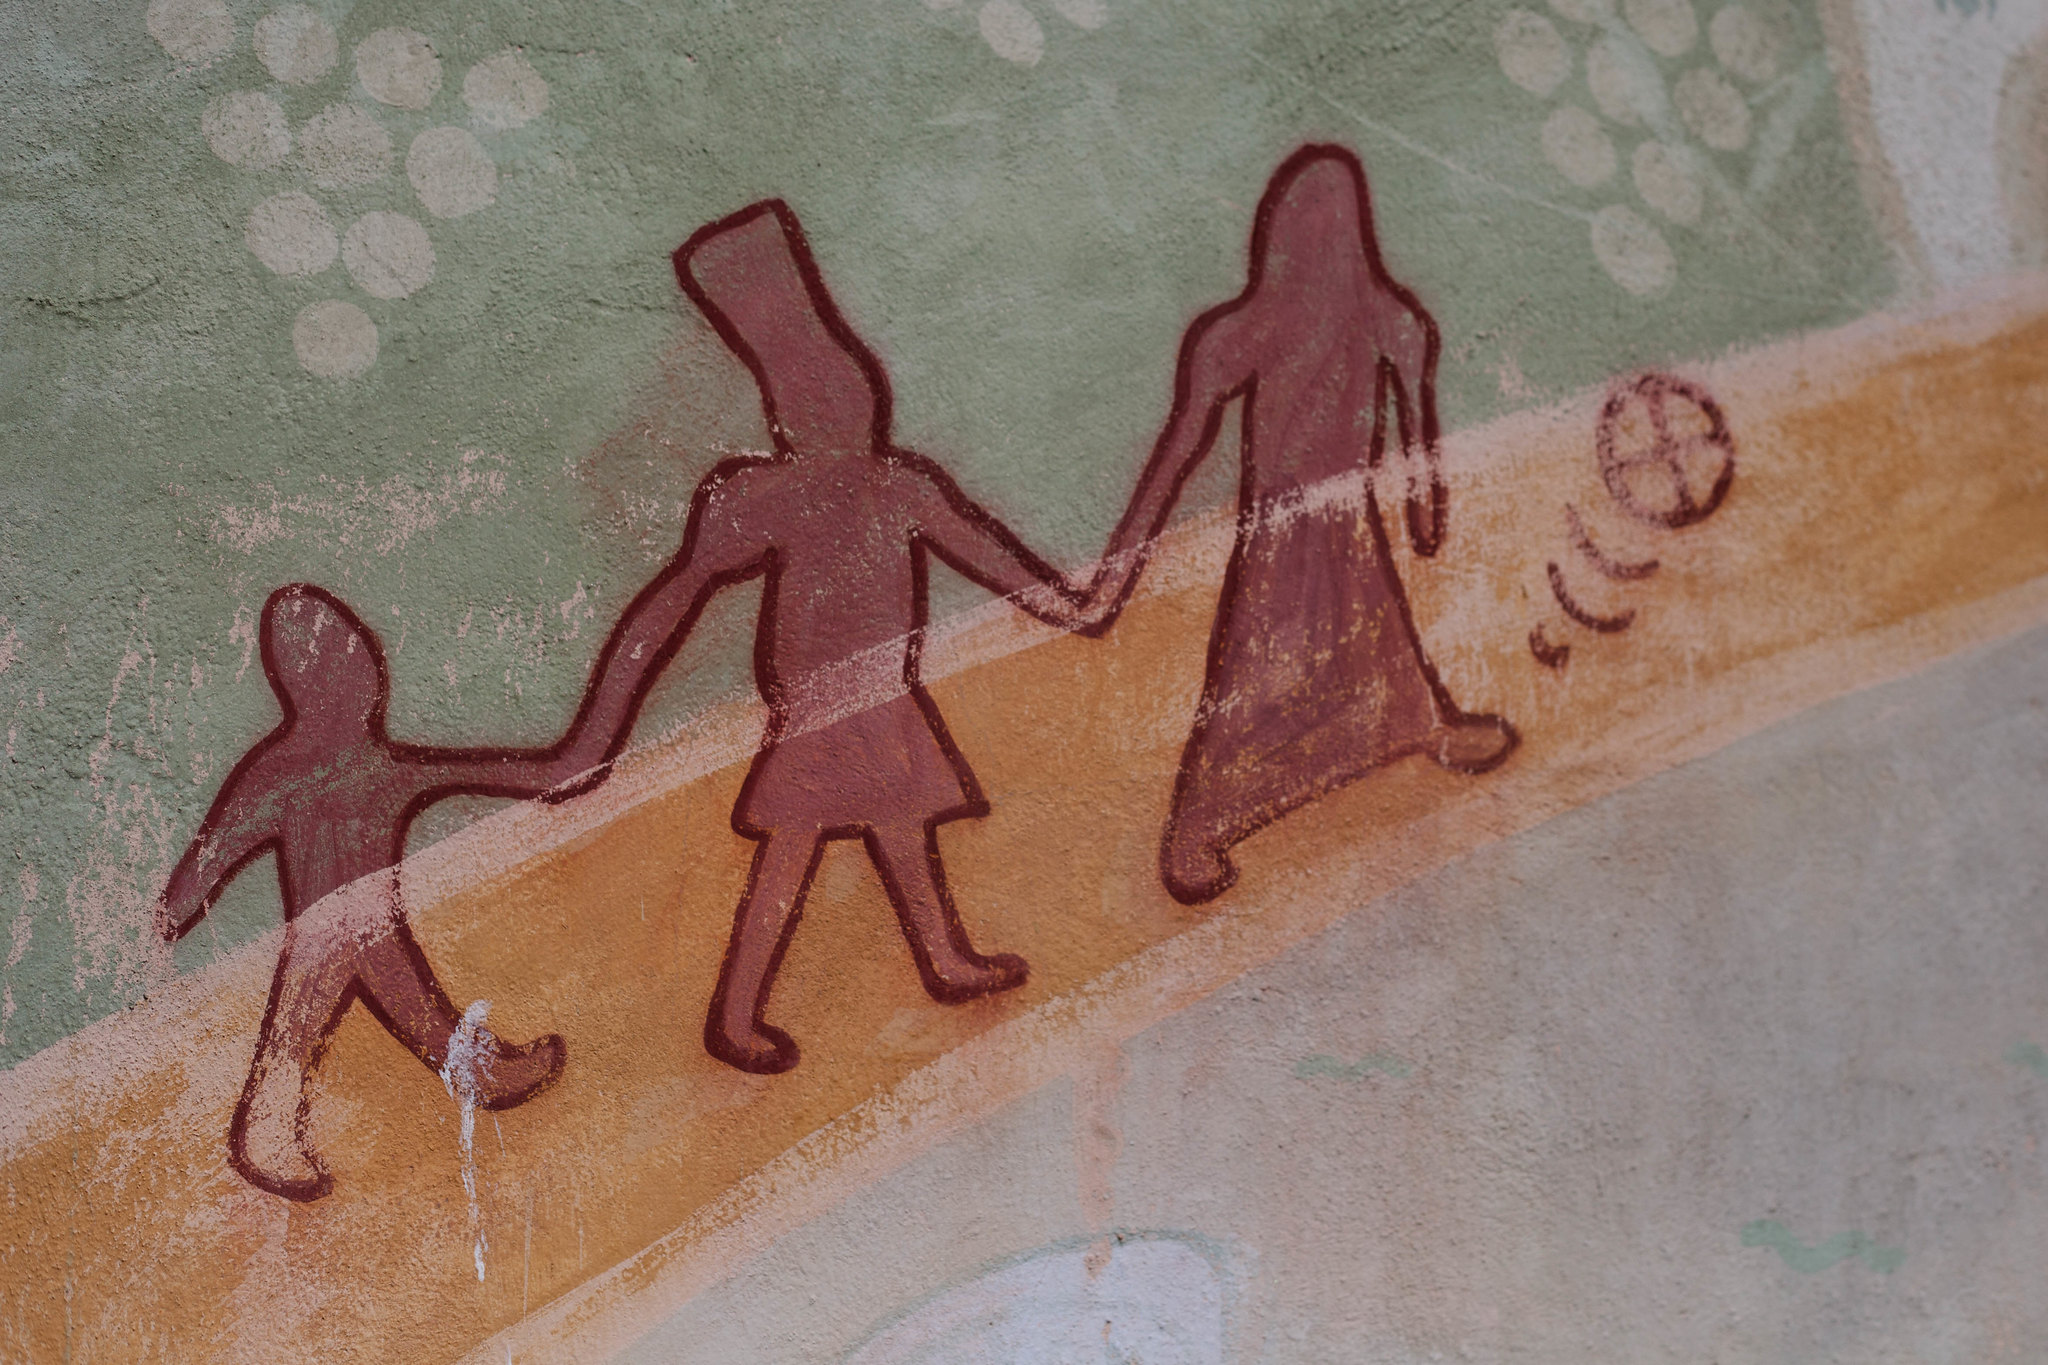 Detail from a mural in Turku.